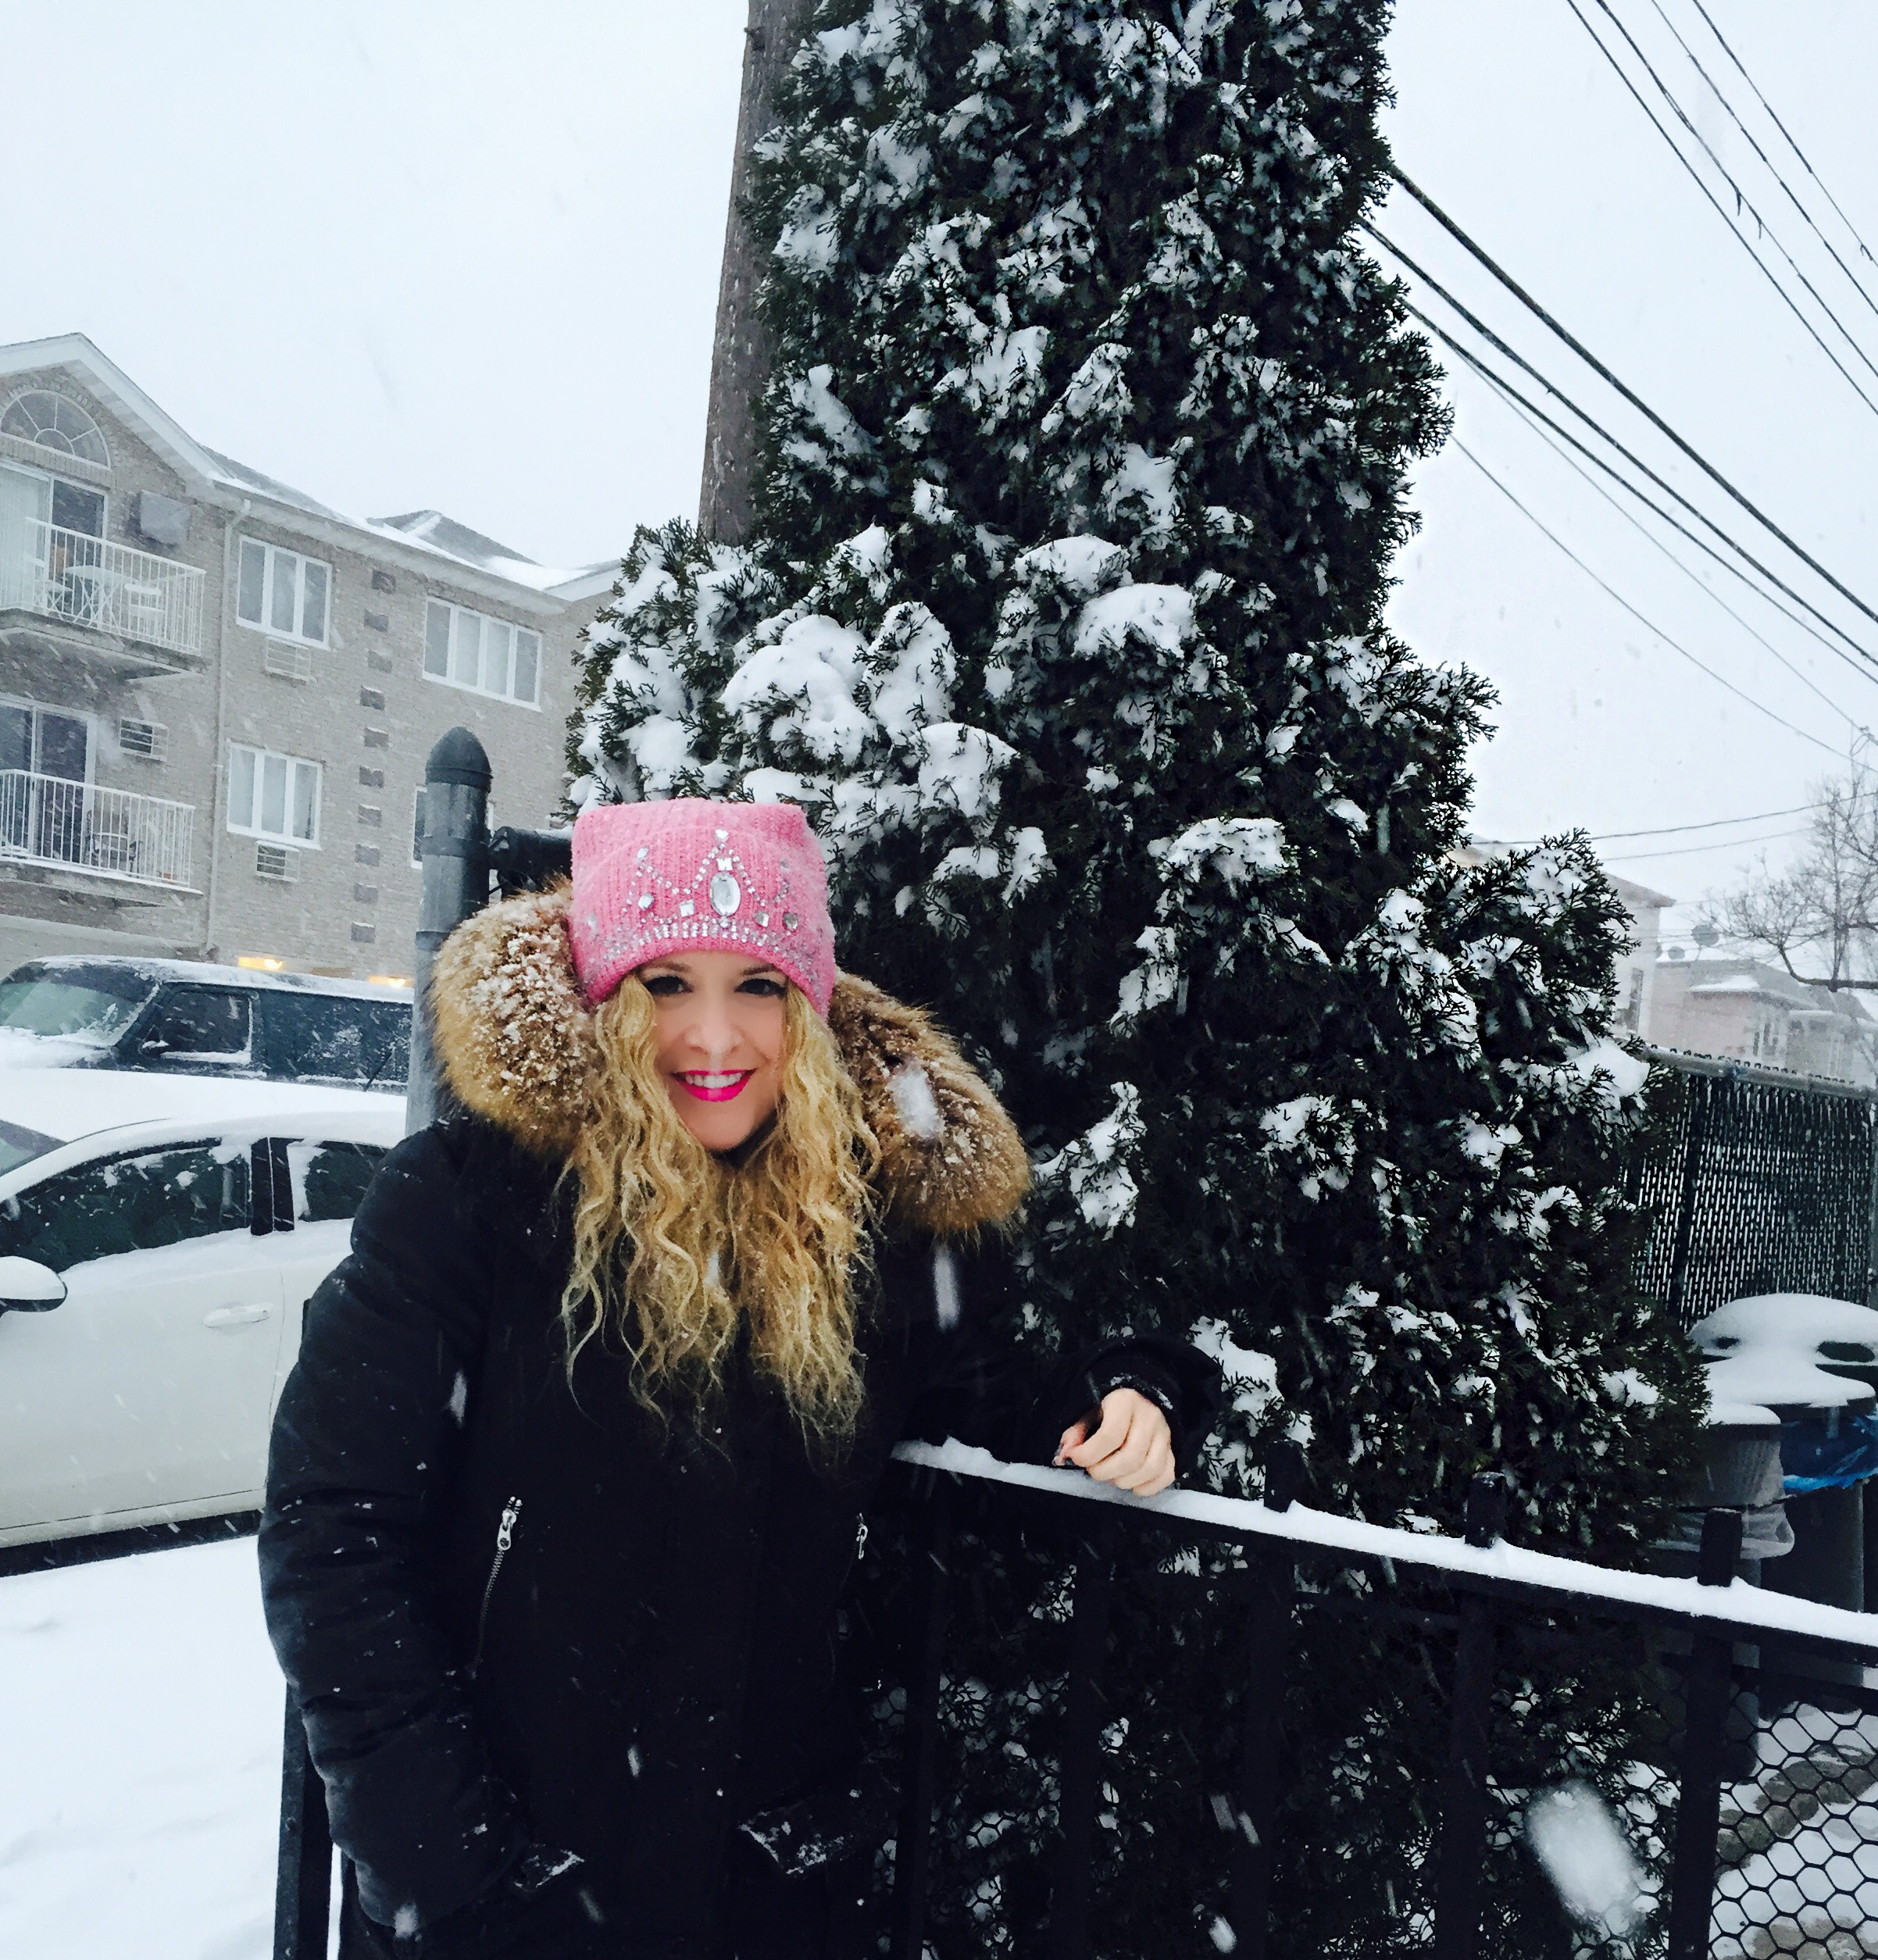 SNOW DAY 21 Snowmageddon 2015